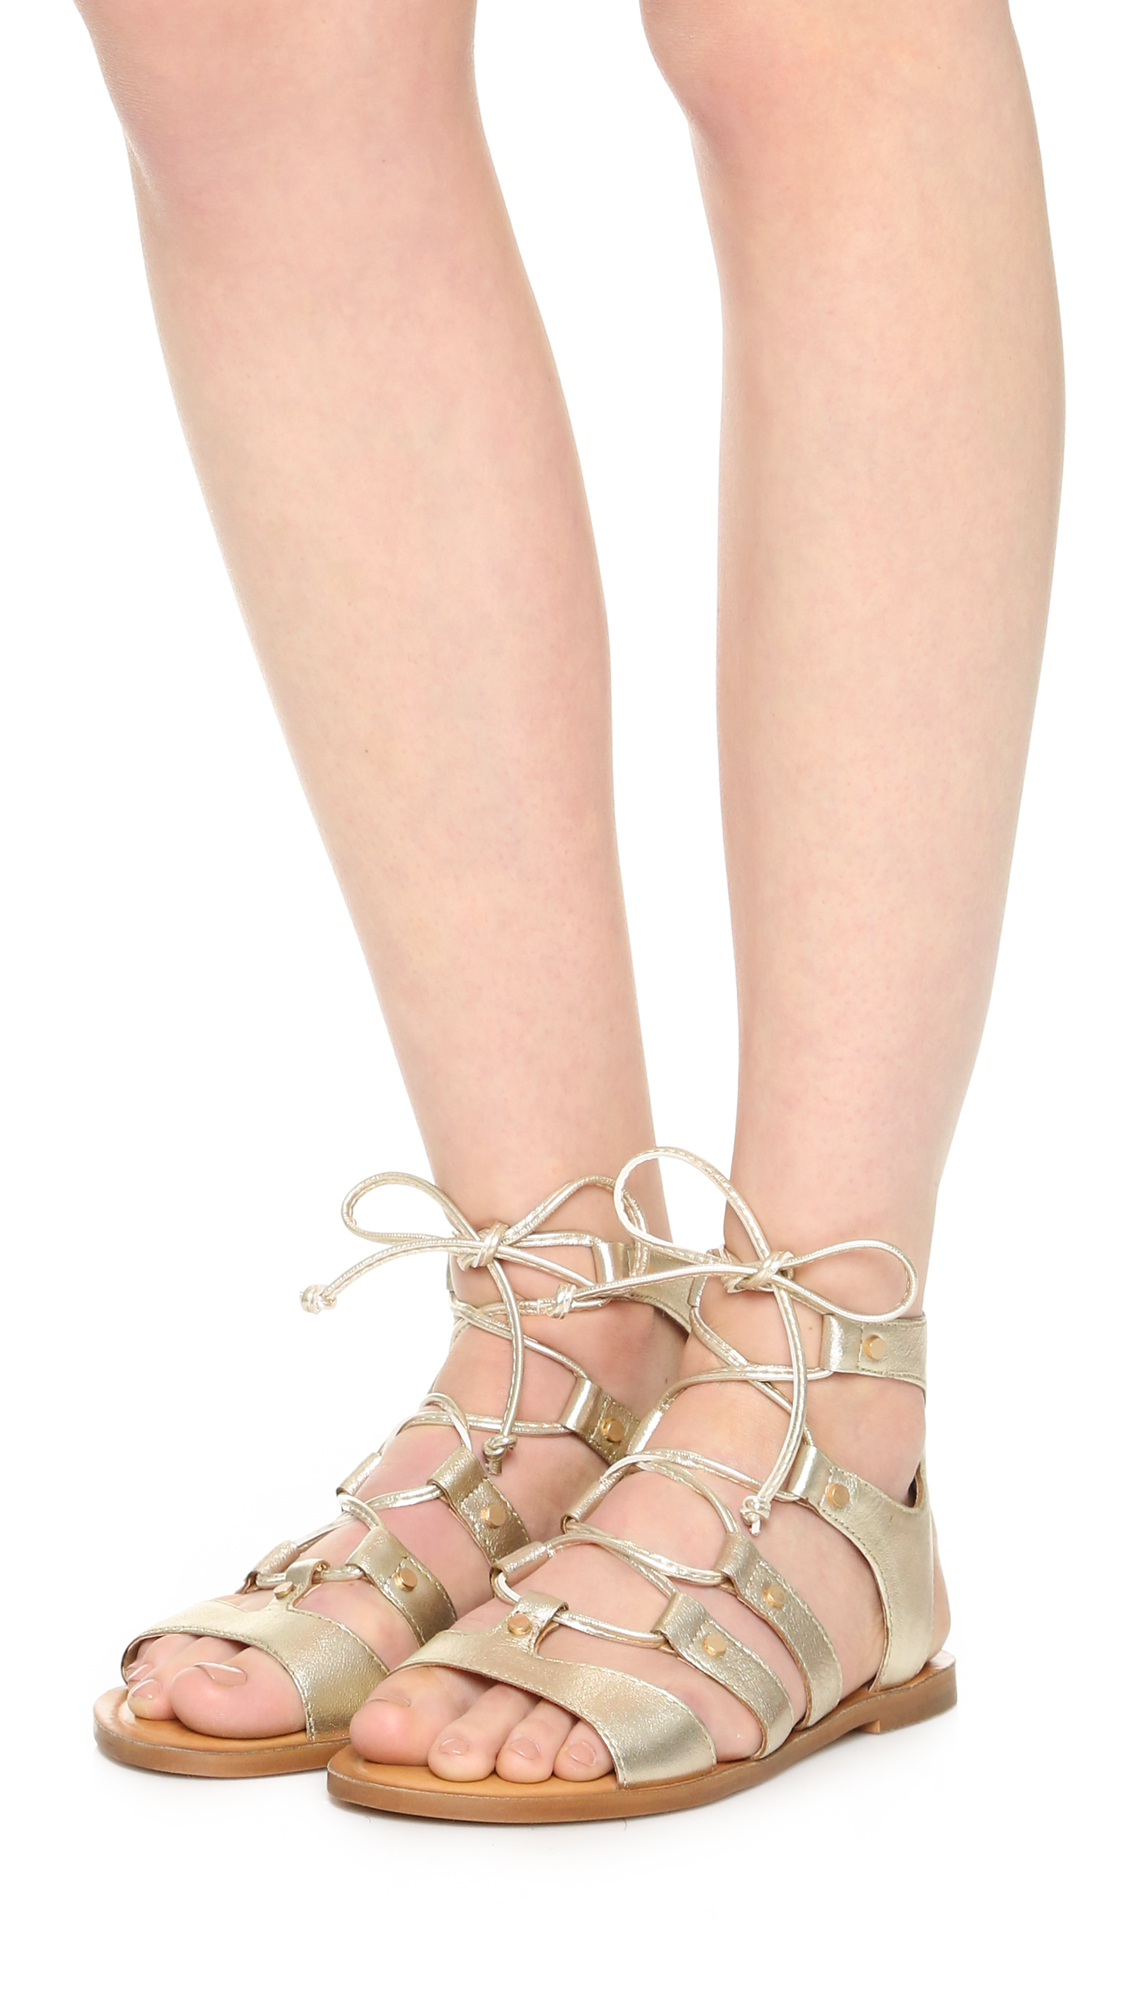 wholesale outlet ever popular best service Jasmyn Gladiator Sandals